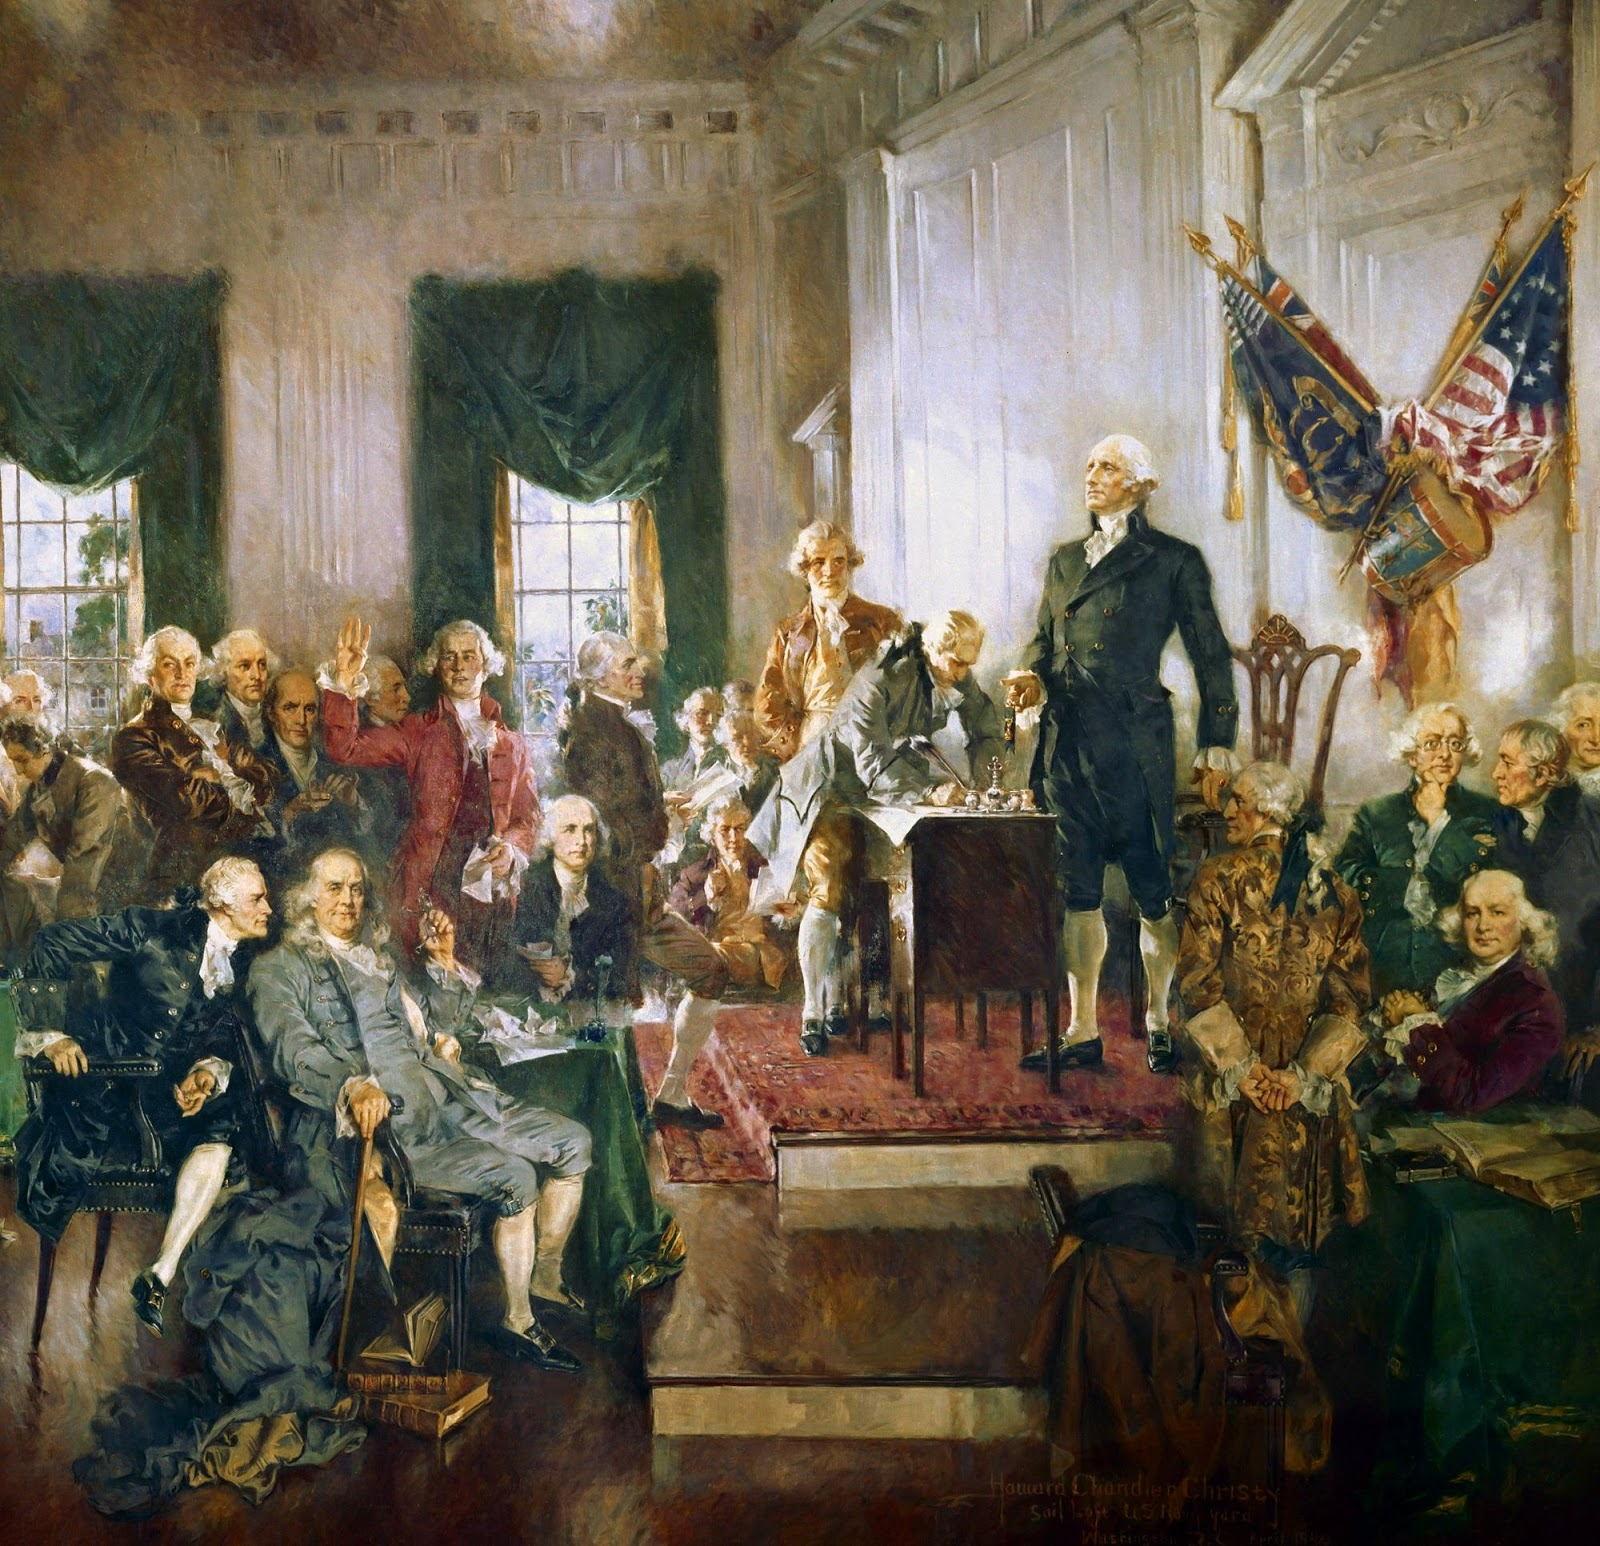 Scene at the Signing of the Constitution of the United States by Howard Chandler Christy [Public Domain], via Wikimedia Commons; modified (crop)